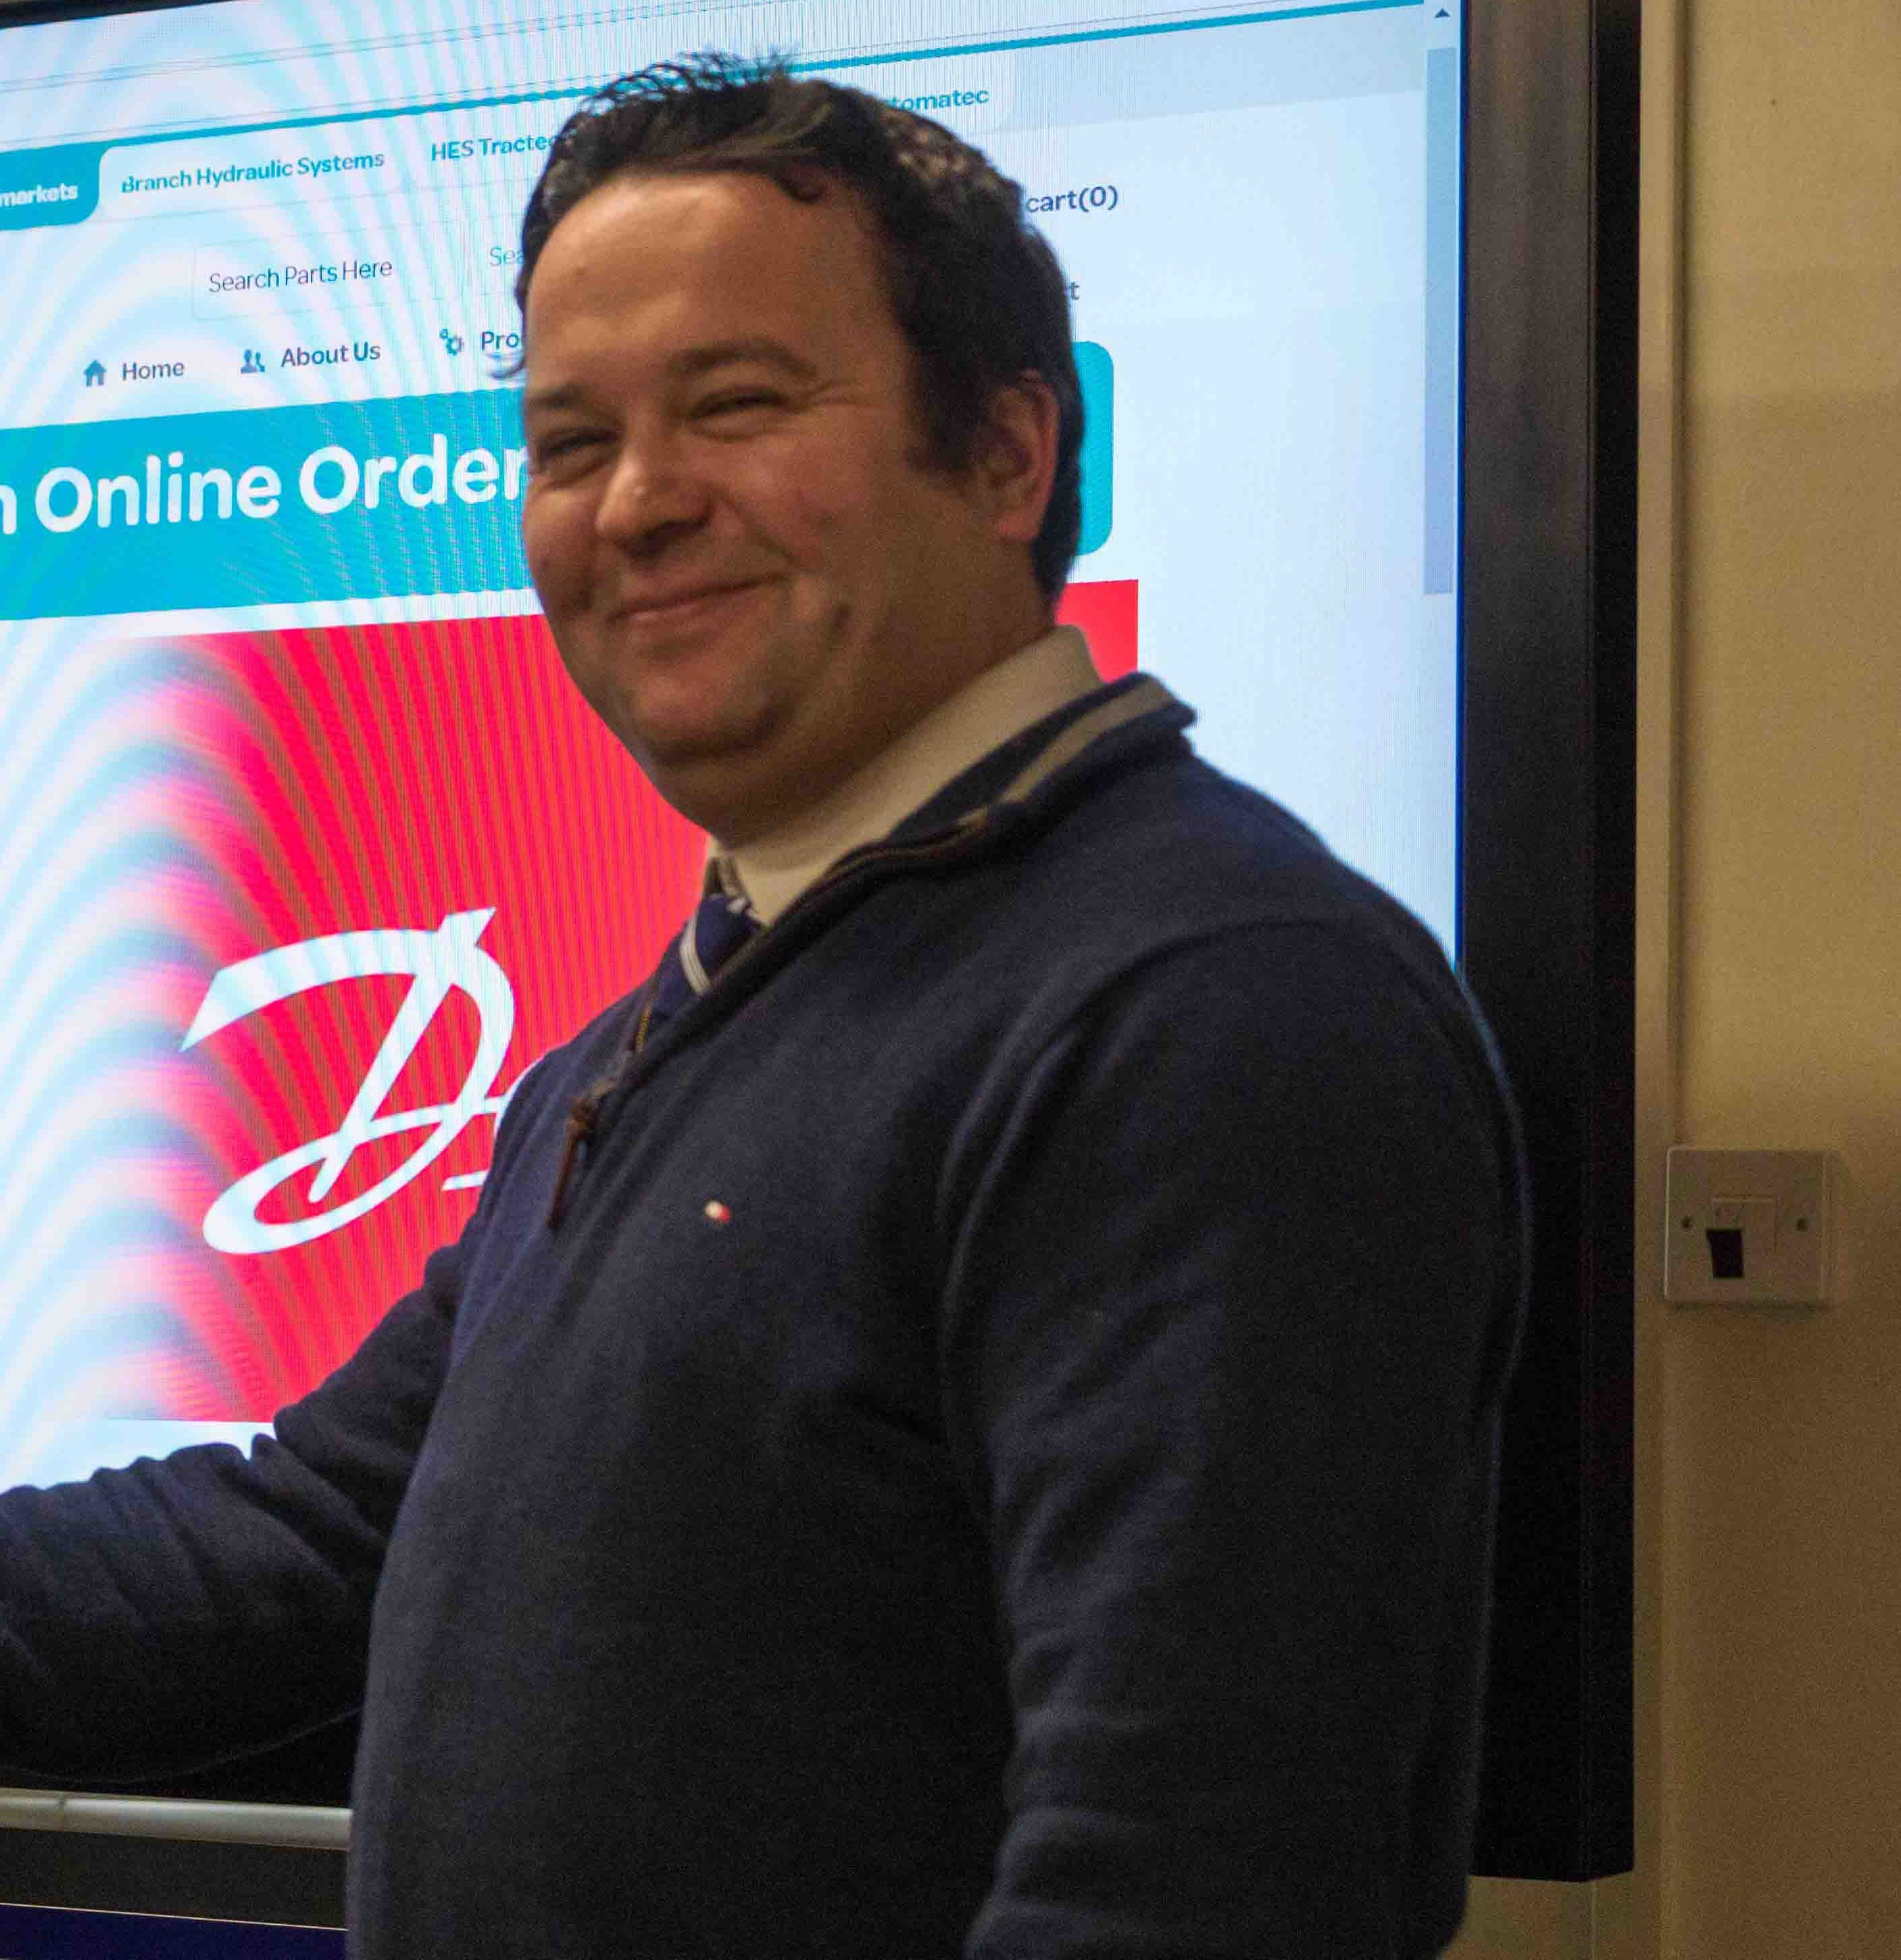 Harry Hamilton HES Technical Team Danfoss Product Manager